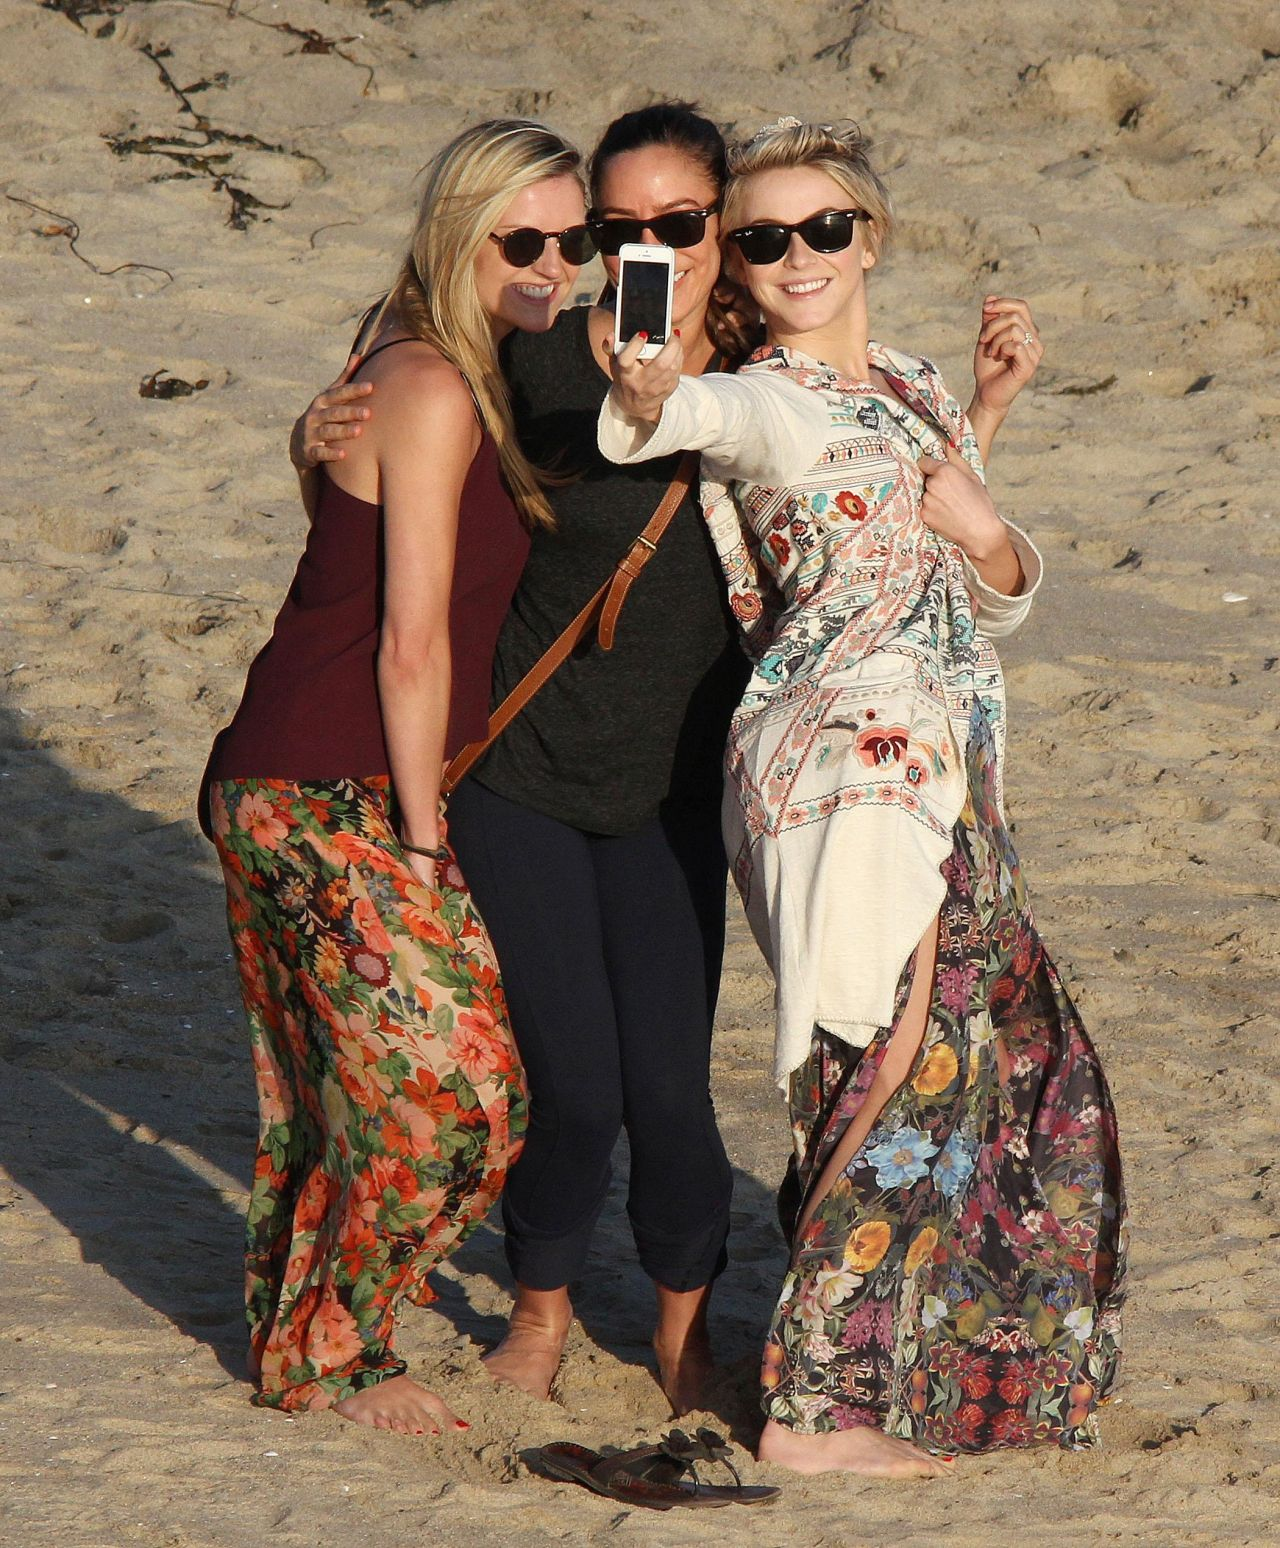 Julianne Hough - Manhattan Beach in California, February 2014